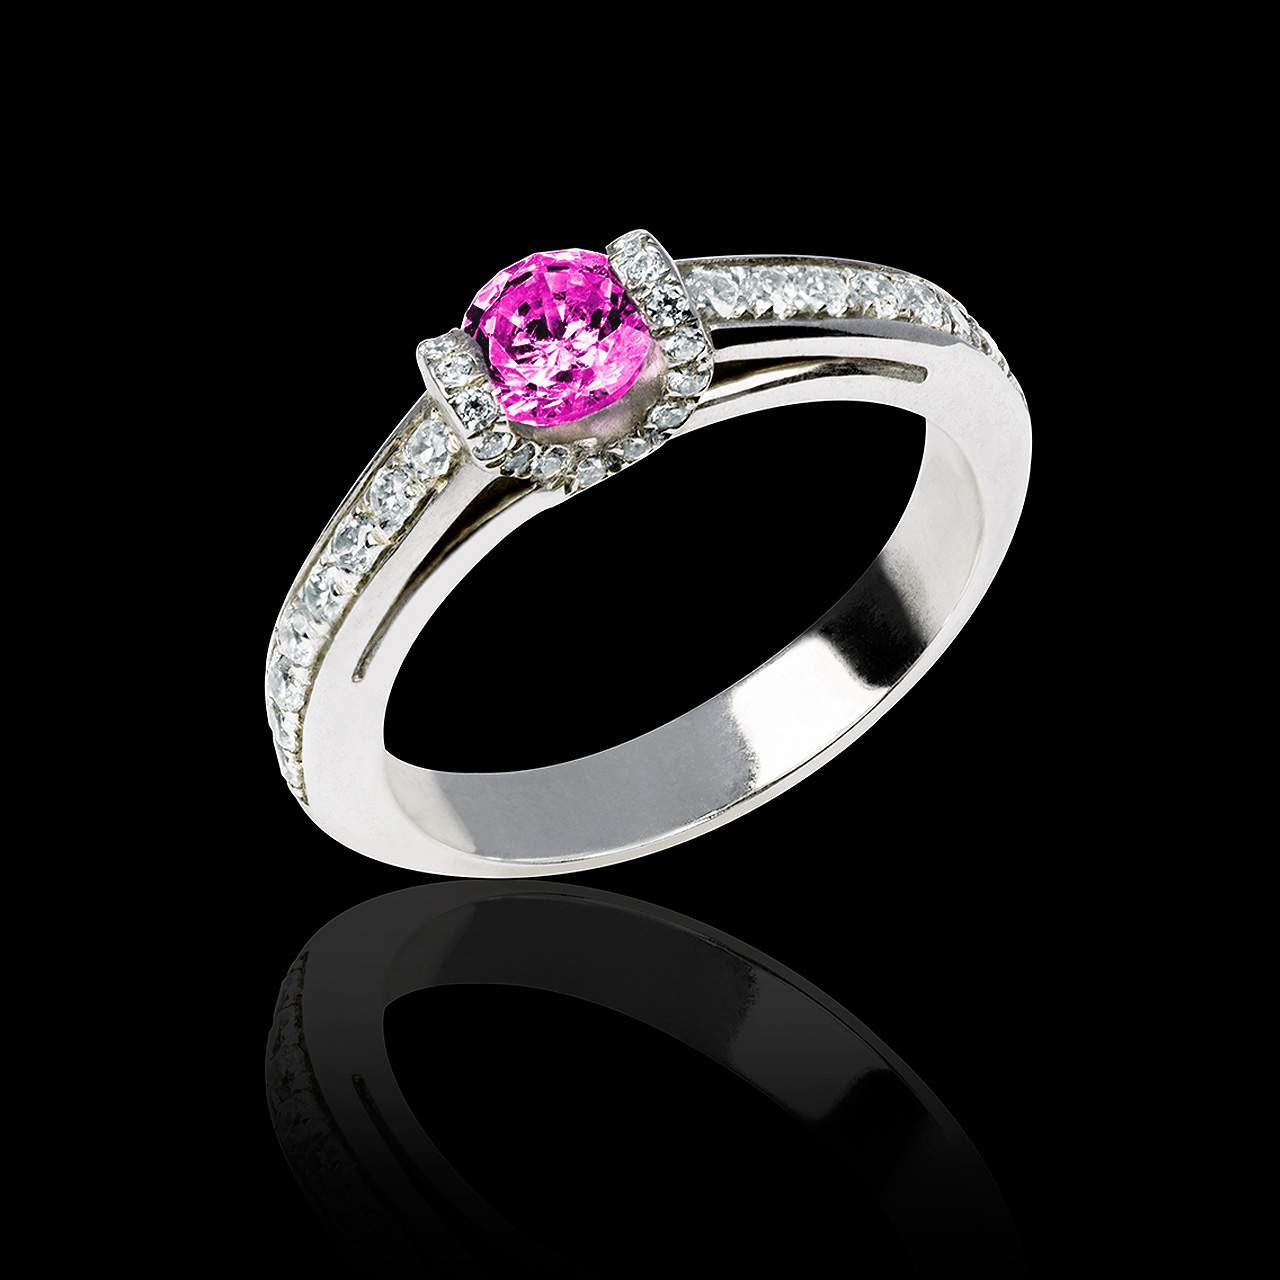 Hera Ring - White Gold - Pink Sapphire - Diamonds - Jaubalet